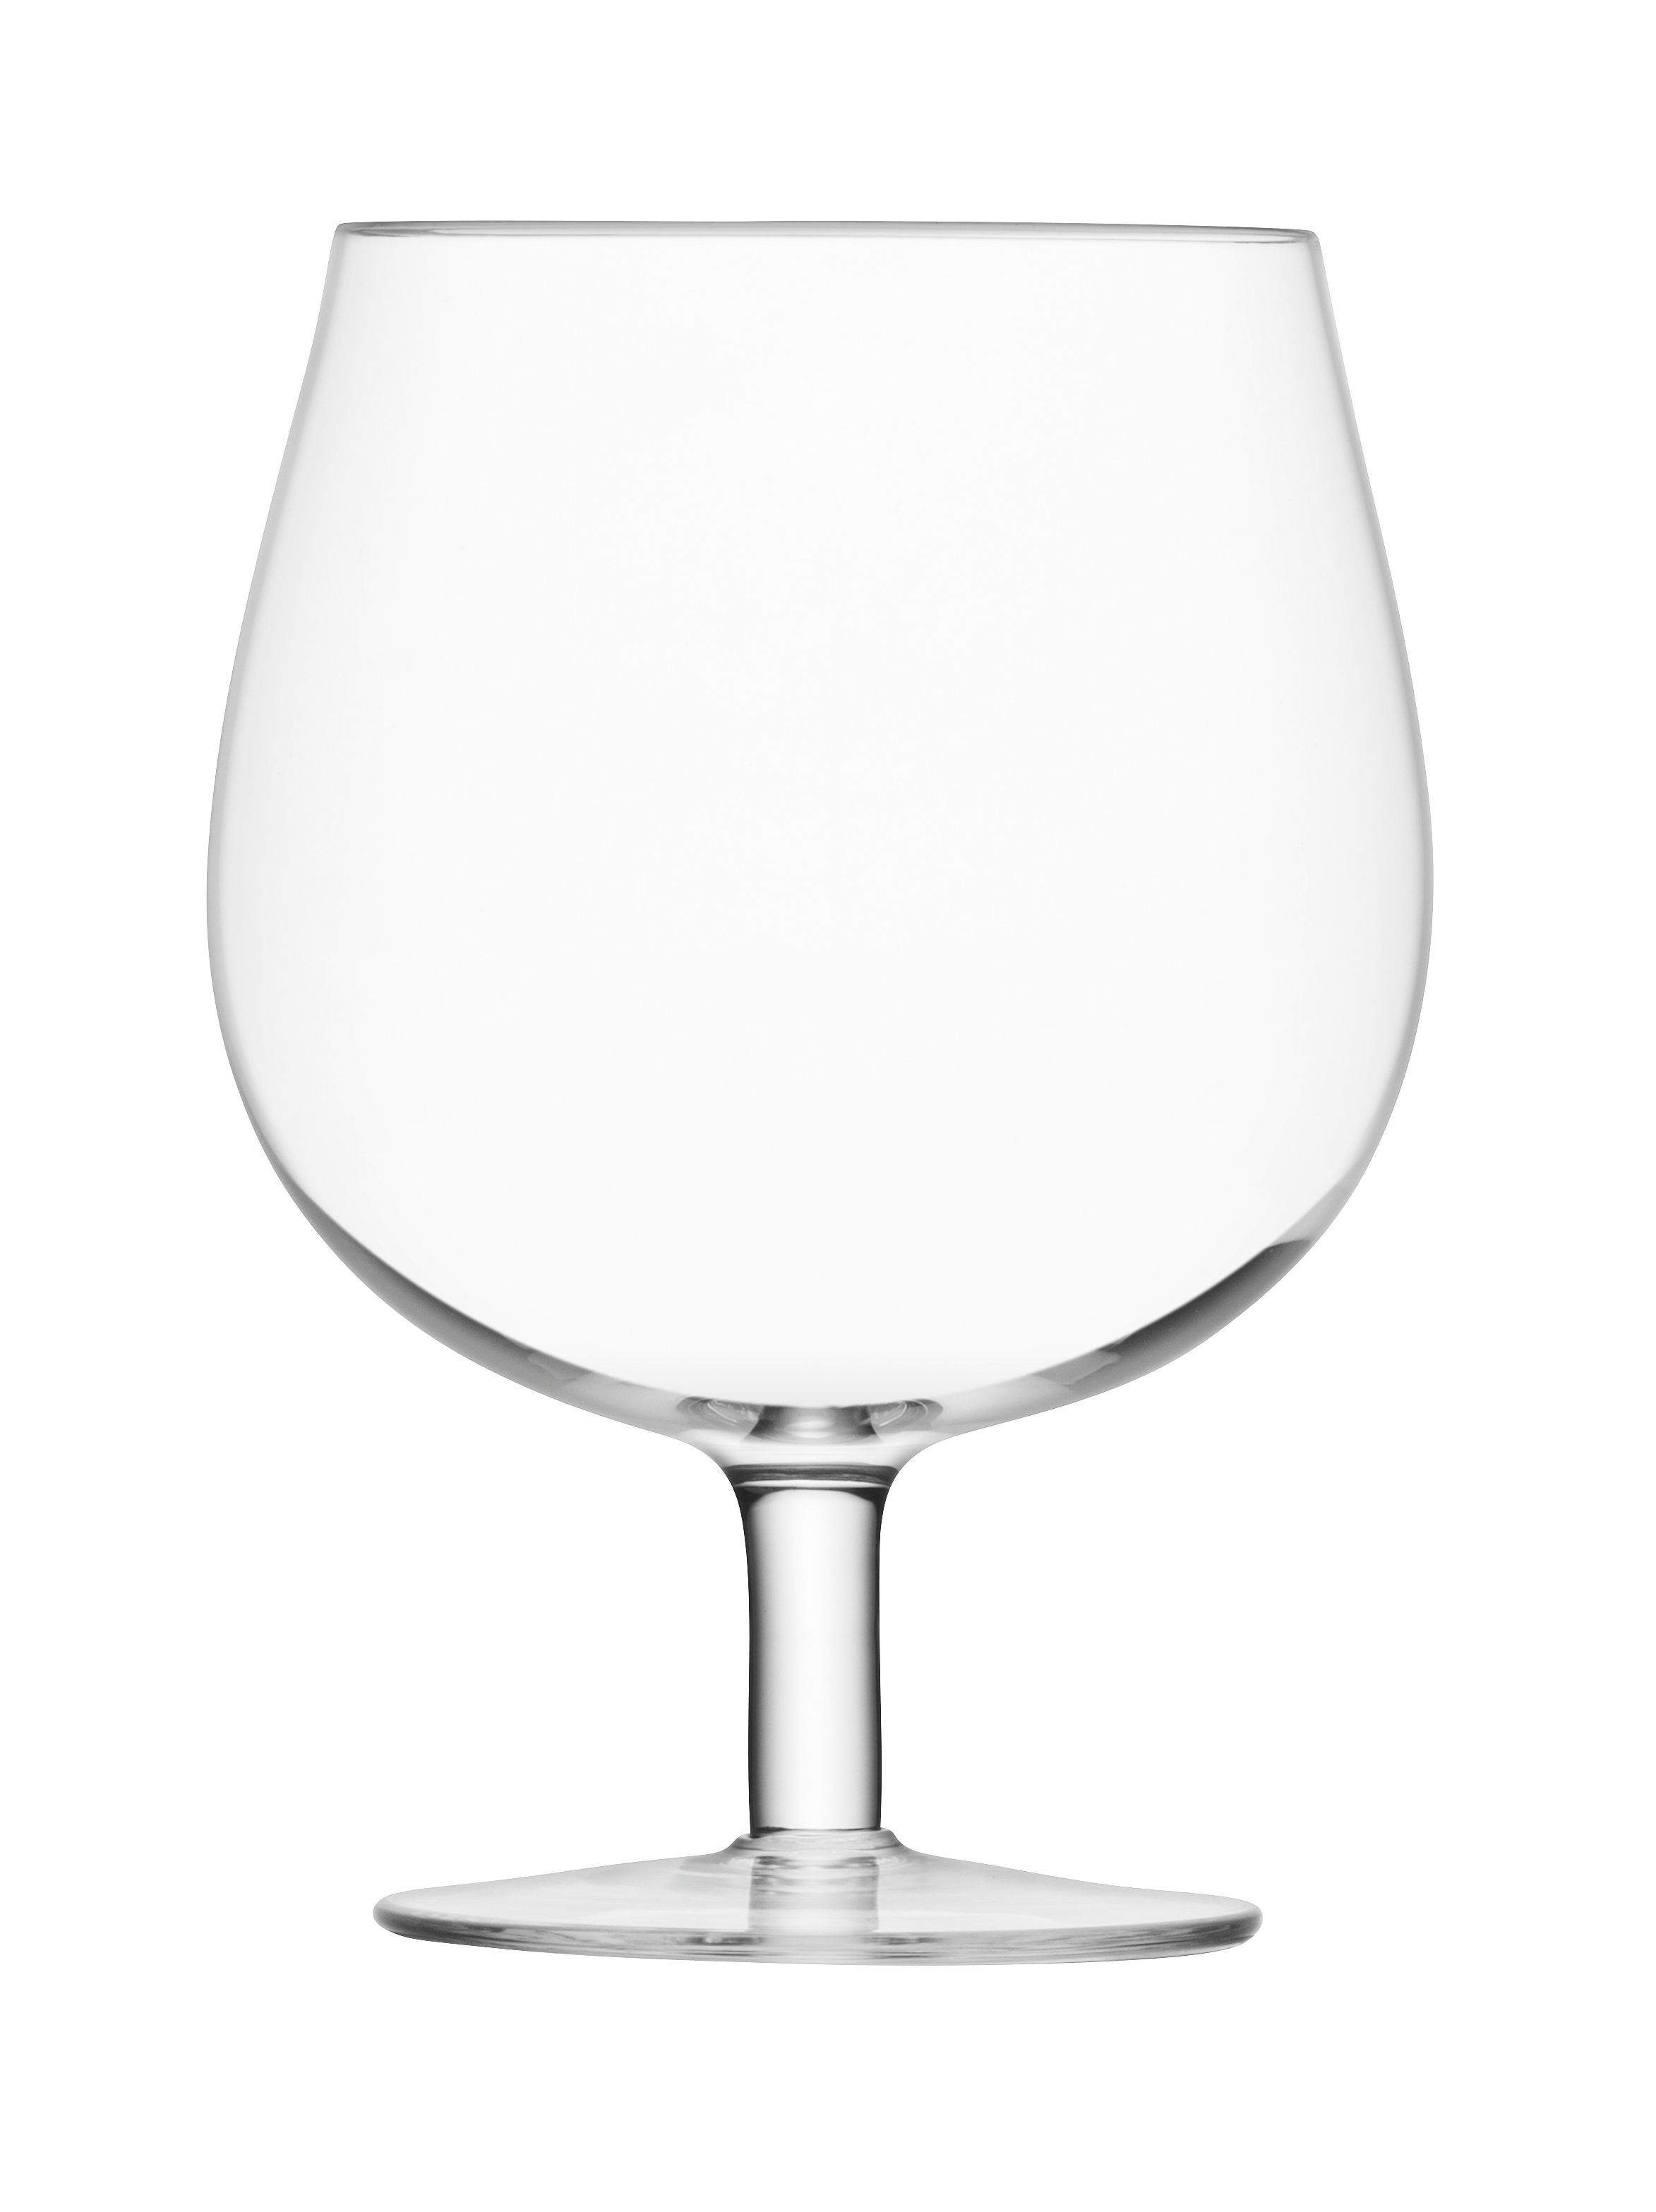 Image of LSA Bar clear craft beer glass 550ml set of 2